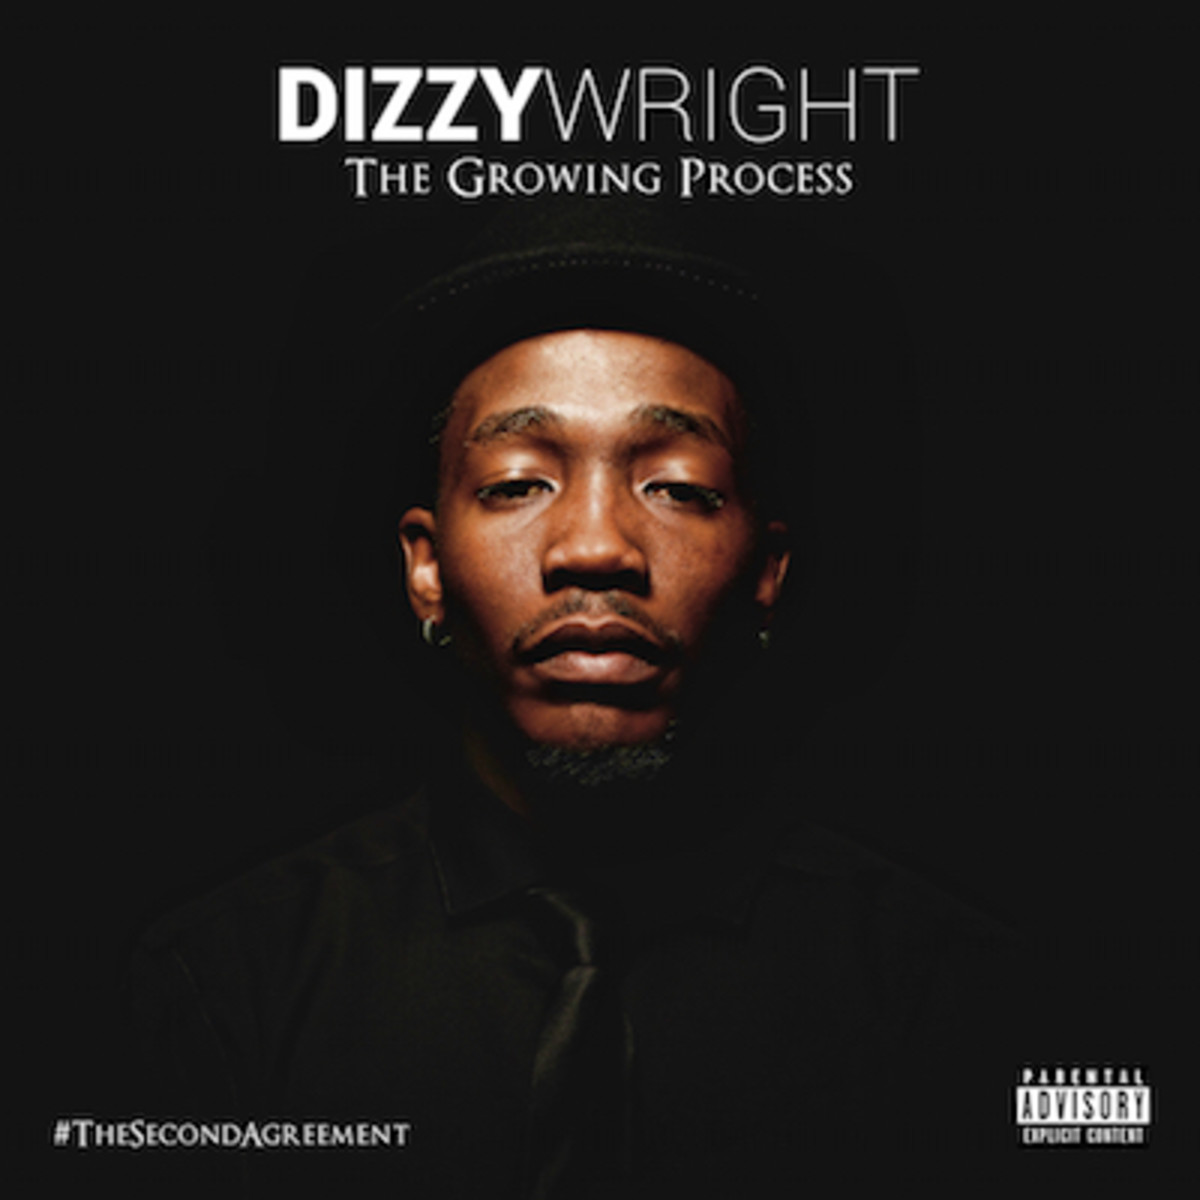 dizzy-wright-the-growing-process.jpg